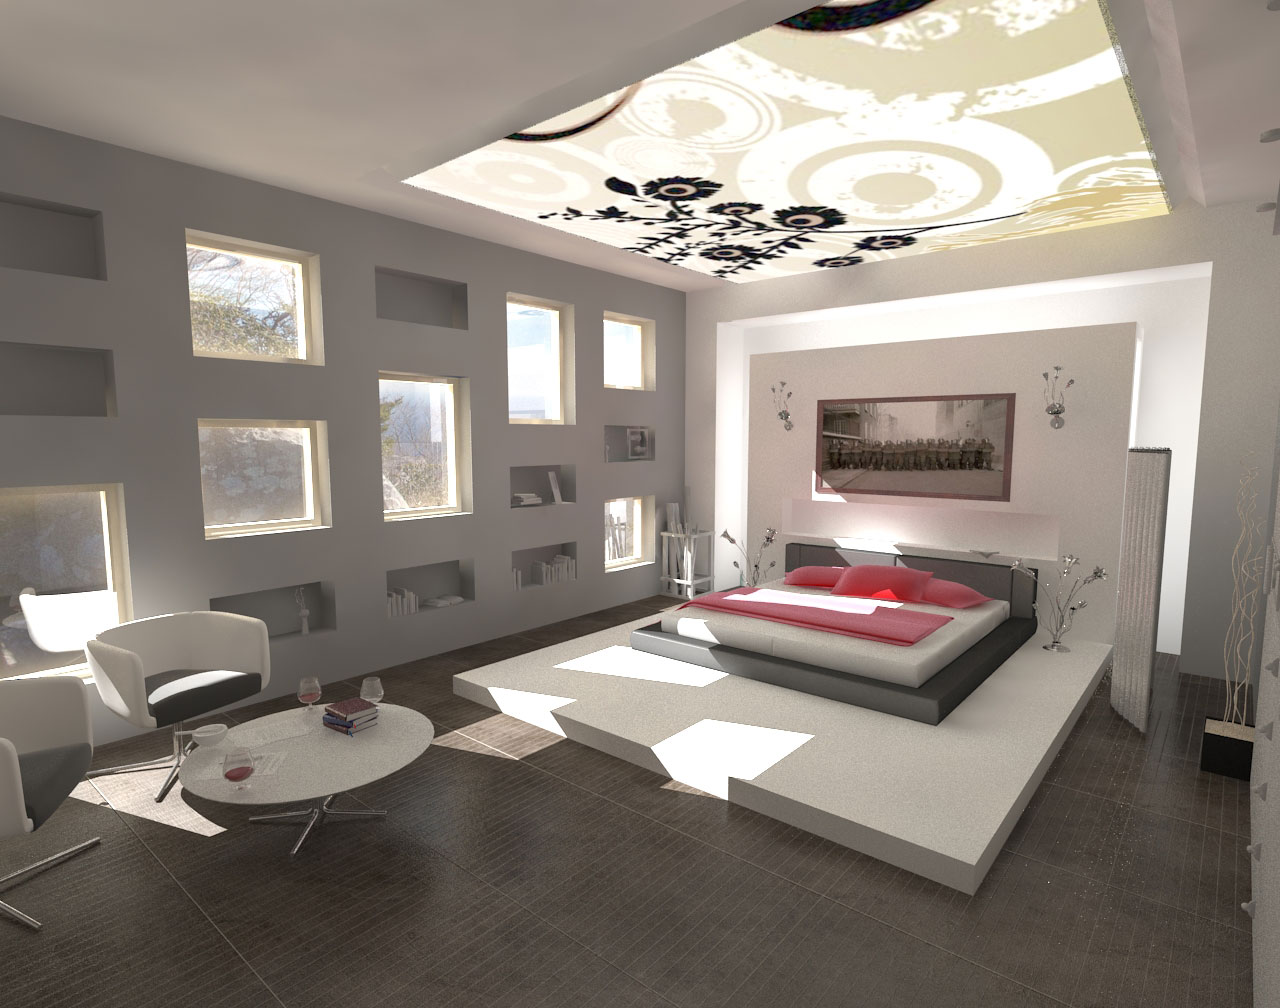 Decorations minimalist design modern bedroom interior for Minimalist home interior